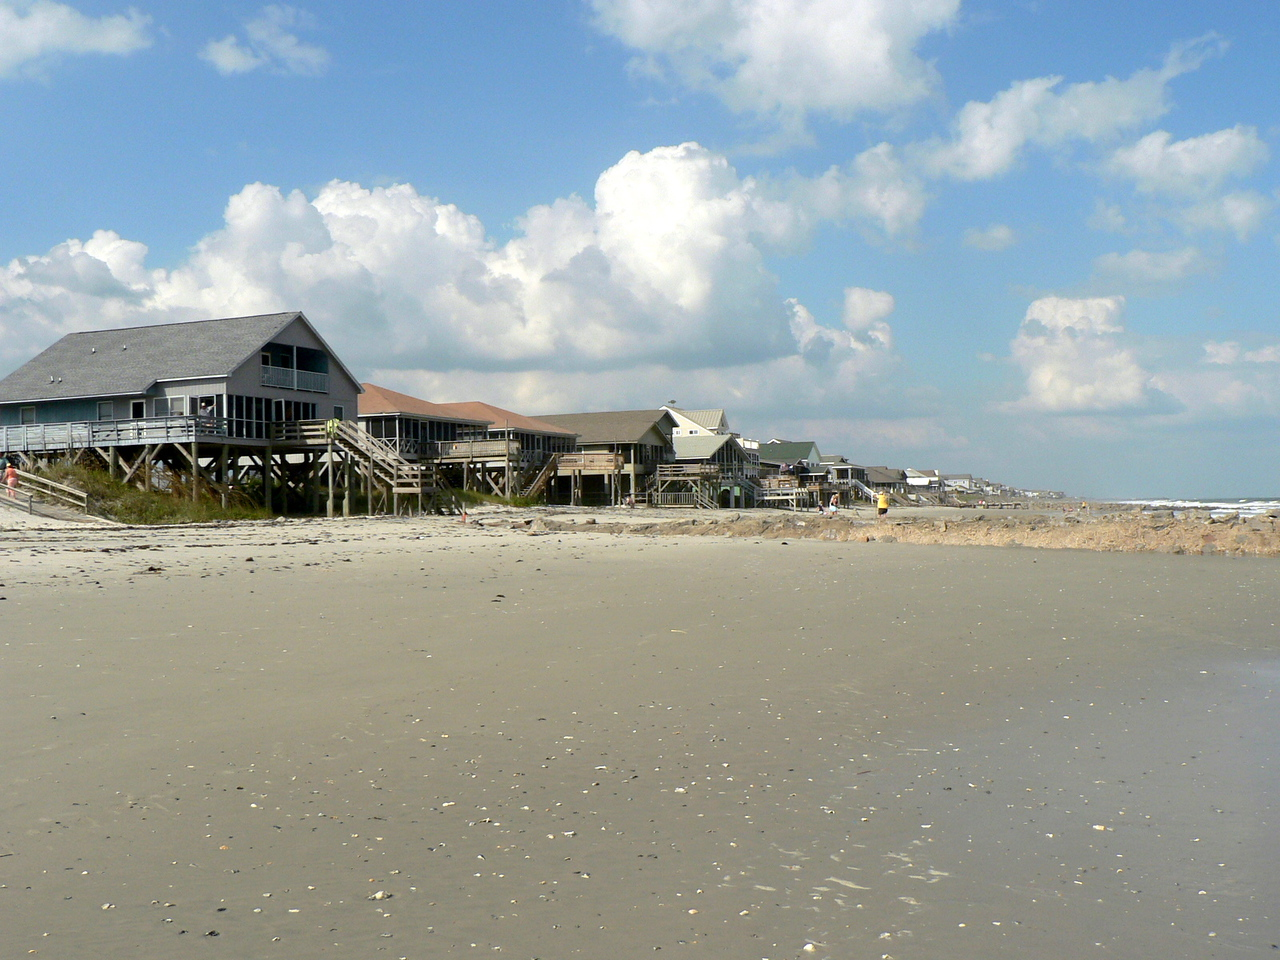 The beach at Pawly's Island